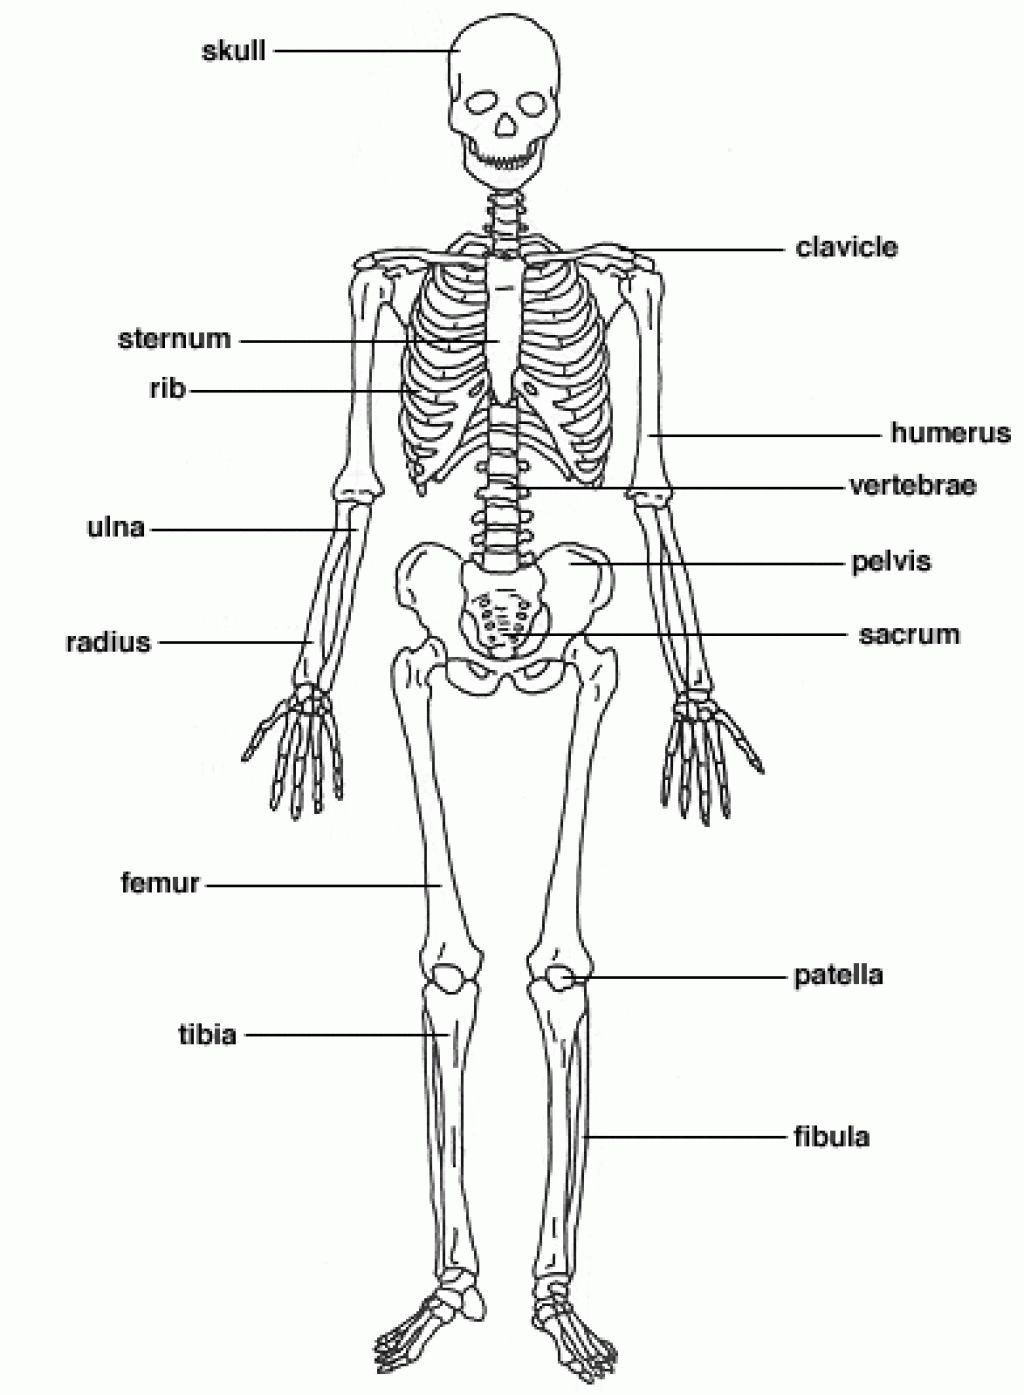 Labeling The Skeleton Worksheet The Skeletal System Diagram Labeled Human Skeleton Human Skeletal System Human Skeleton Bones